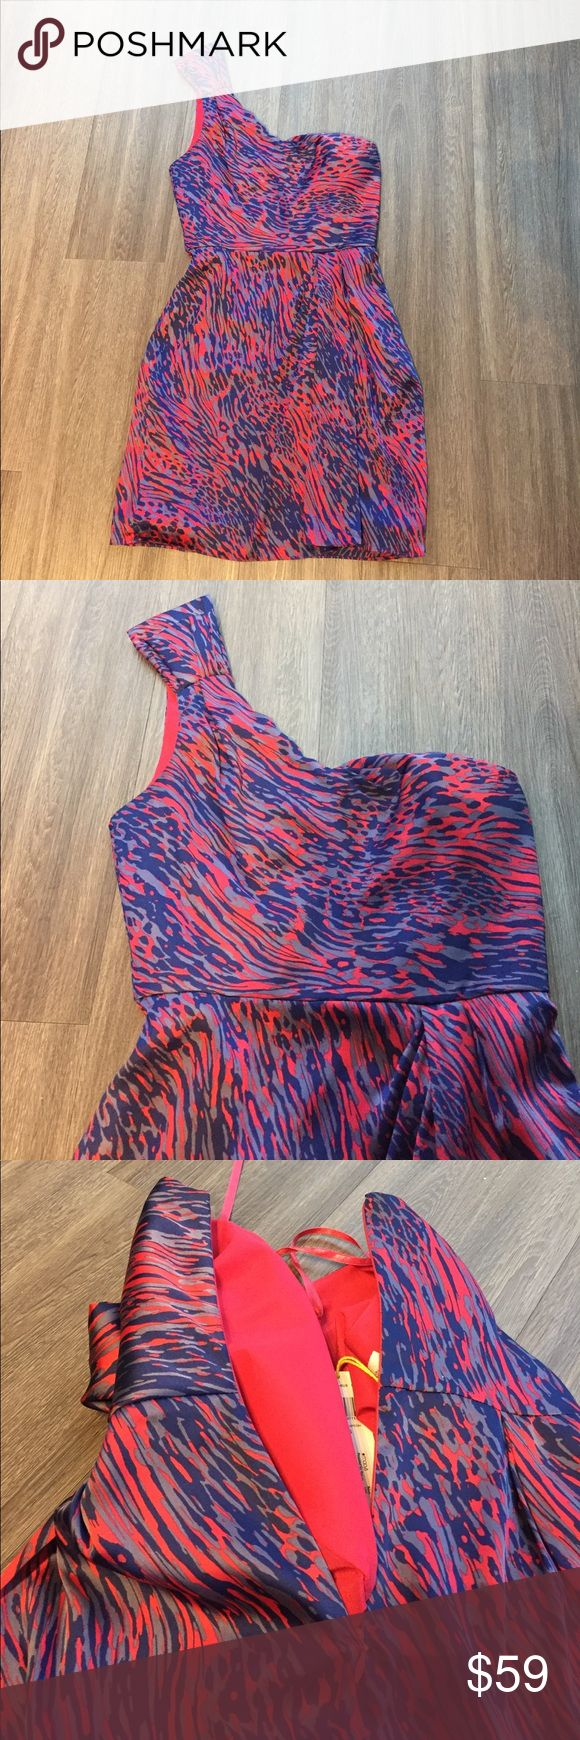 NWT BCBGeneration Size 6 one shoulder dress Beautifully printed BCBGeneration Size 6 one shoulder dress. New with tags! Zips down side. Retails for $128. BCBGeneration Dresses One Shoulder